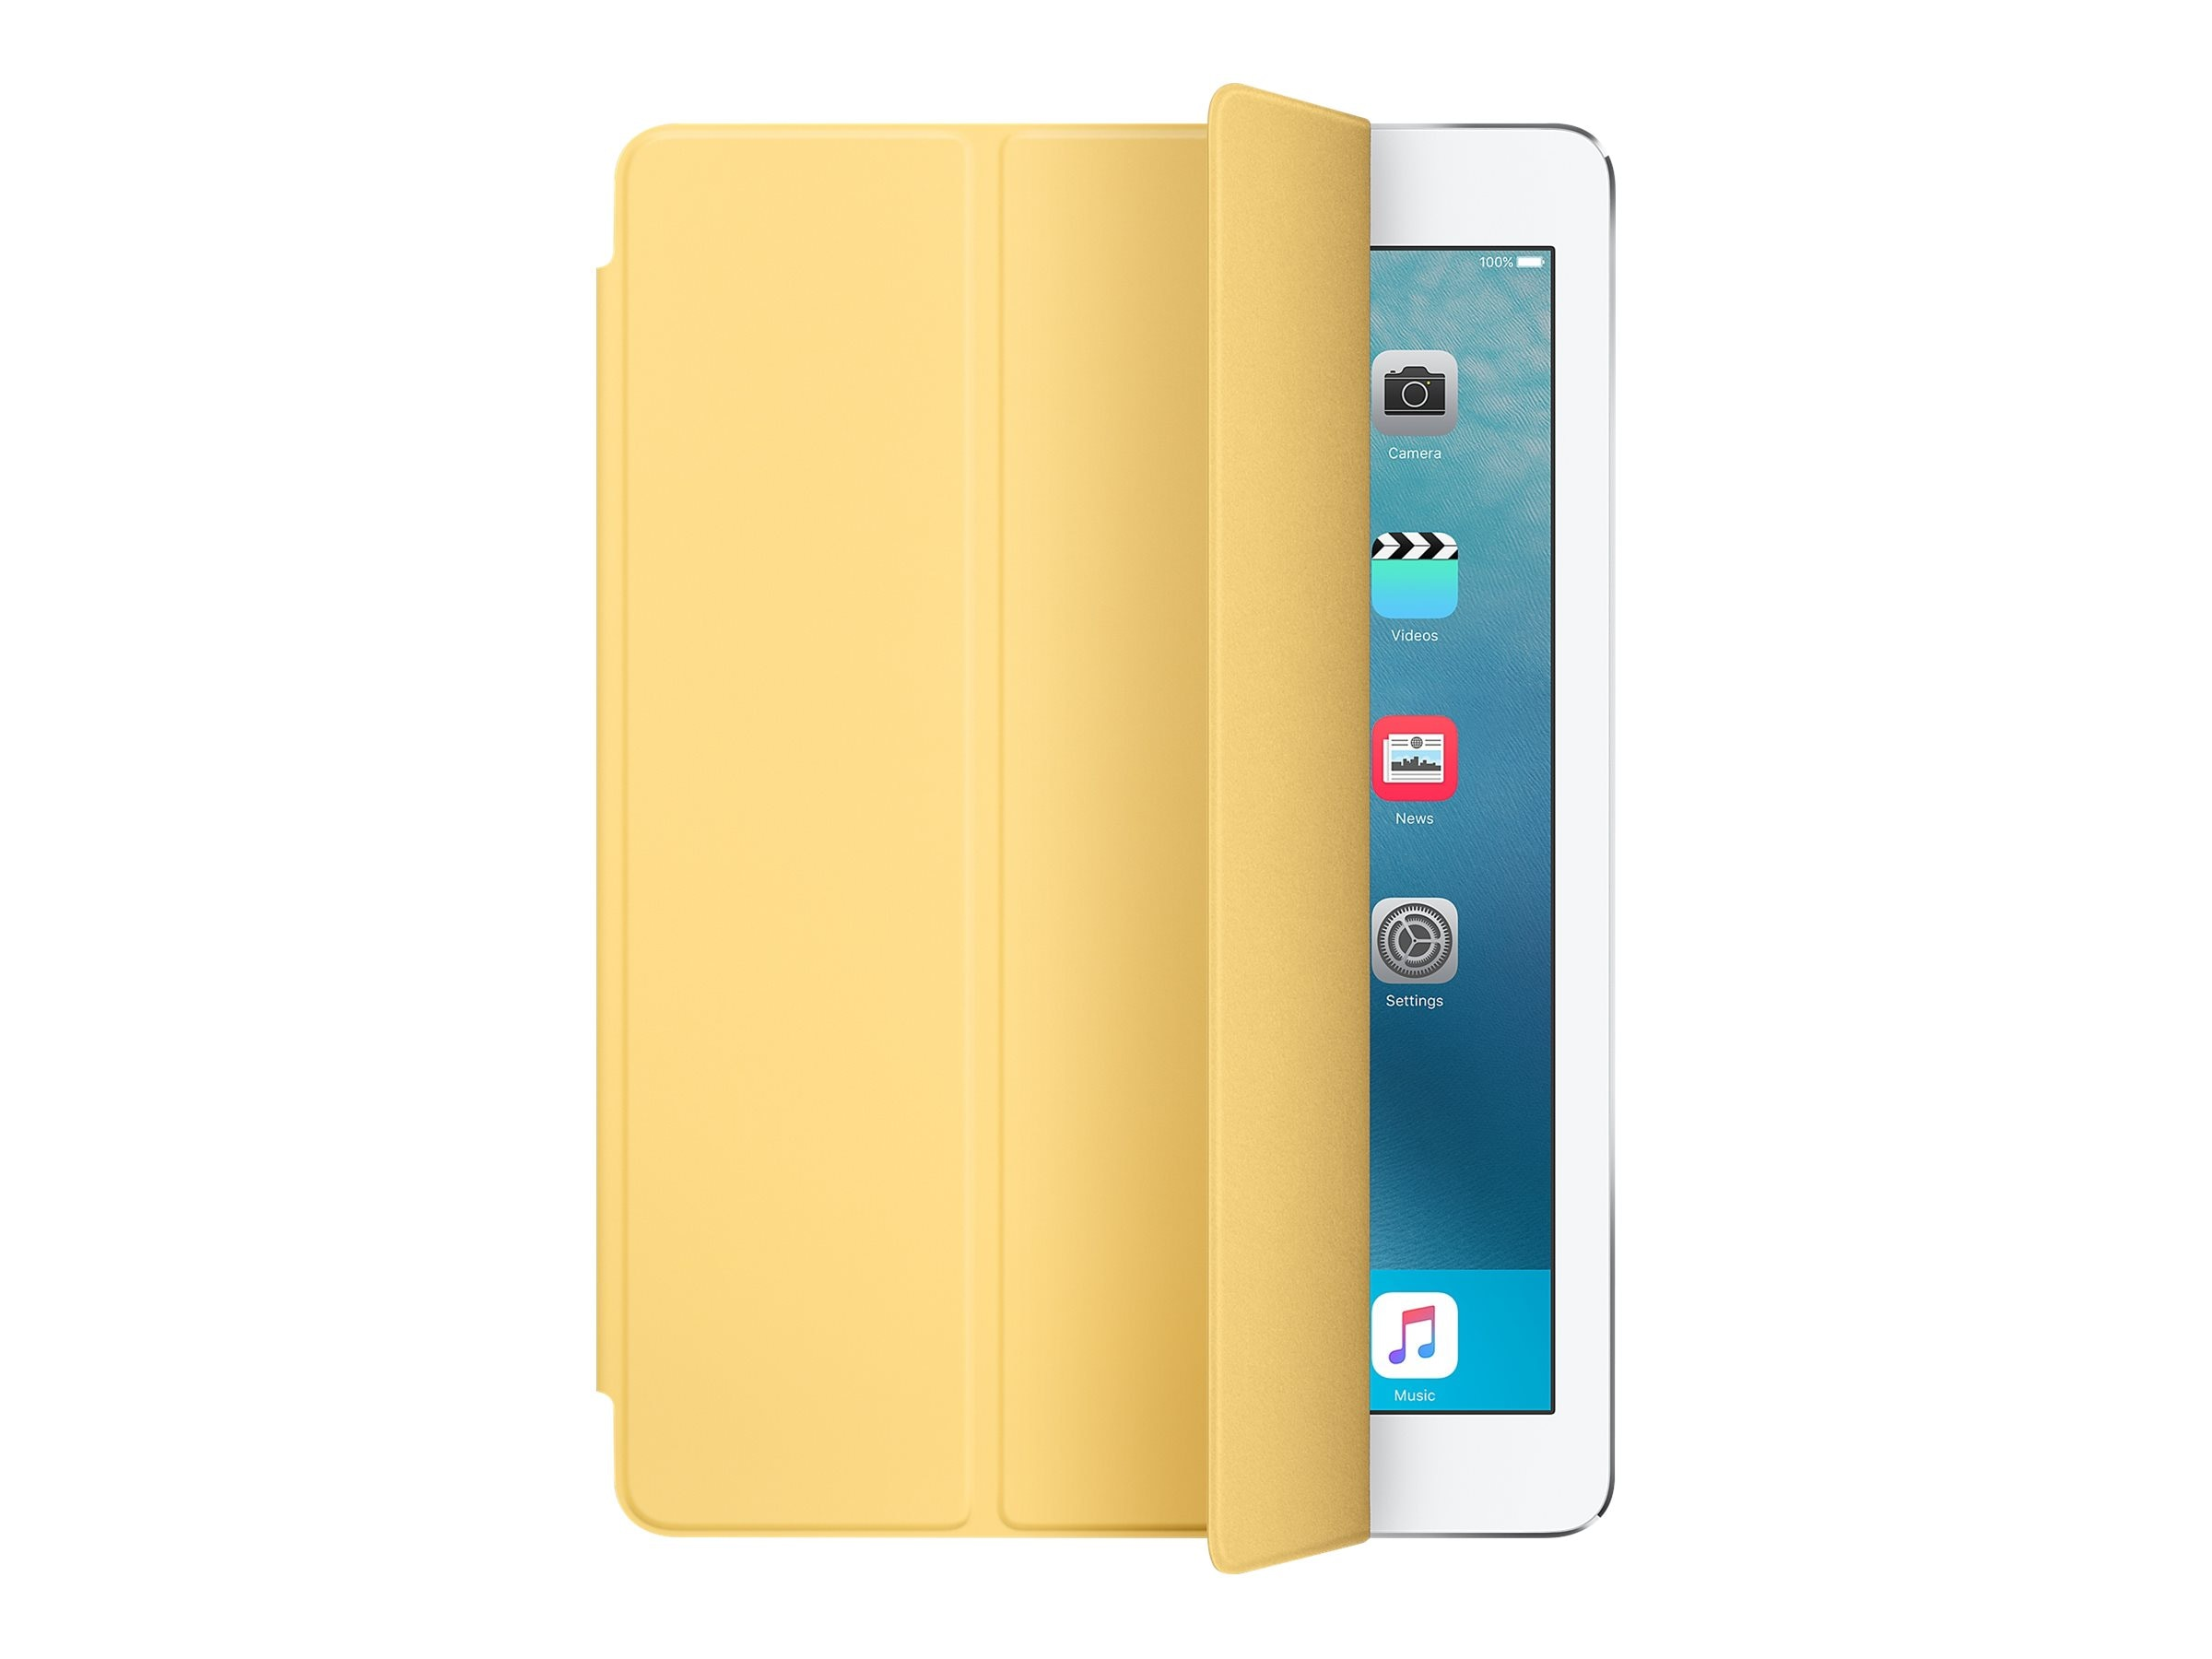 Apple Smart Cover for iPad Pro 9.7, Yellow, MM2K2AM/A, 31812298, Carrying Cases - Tablets & eReaders